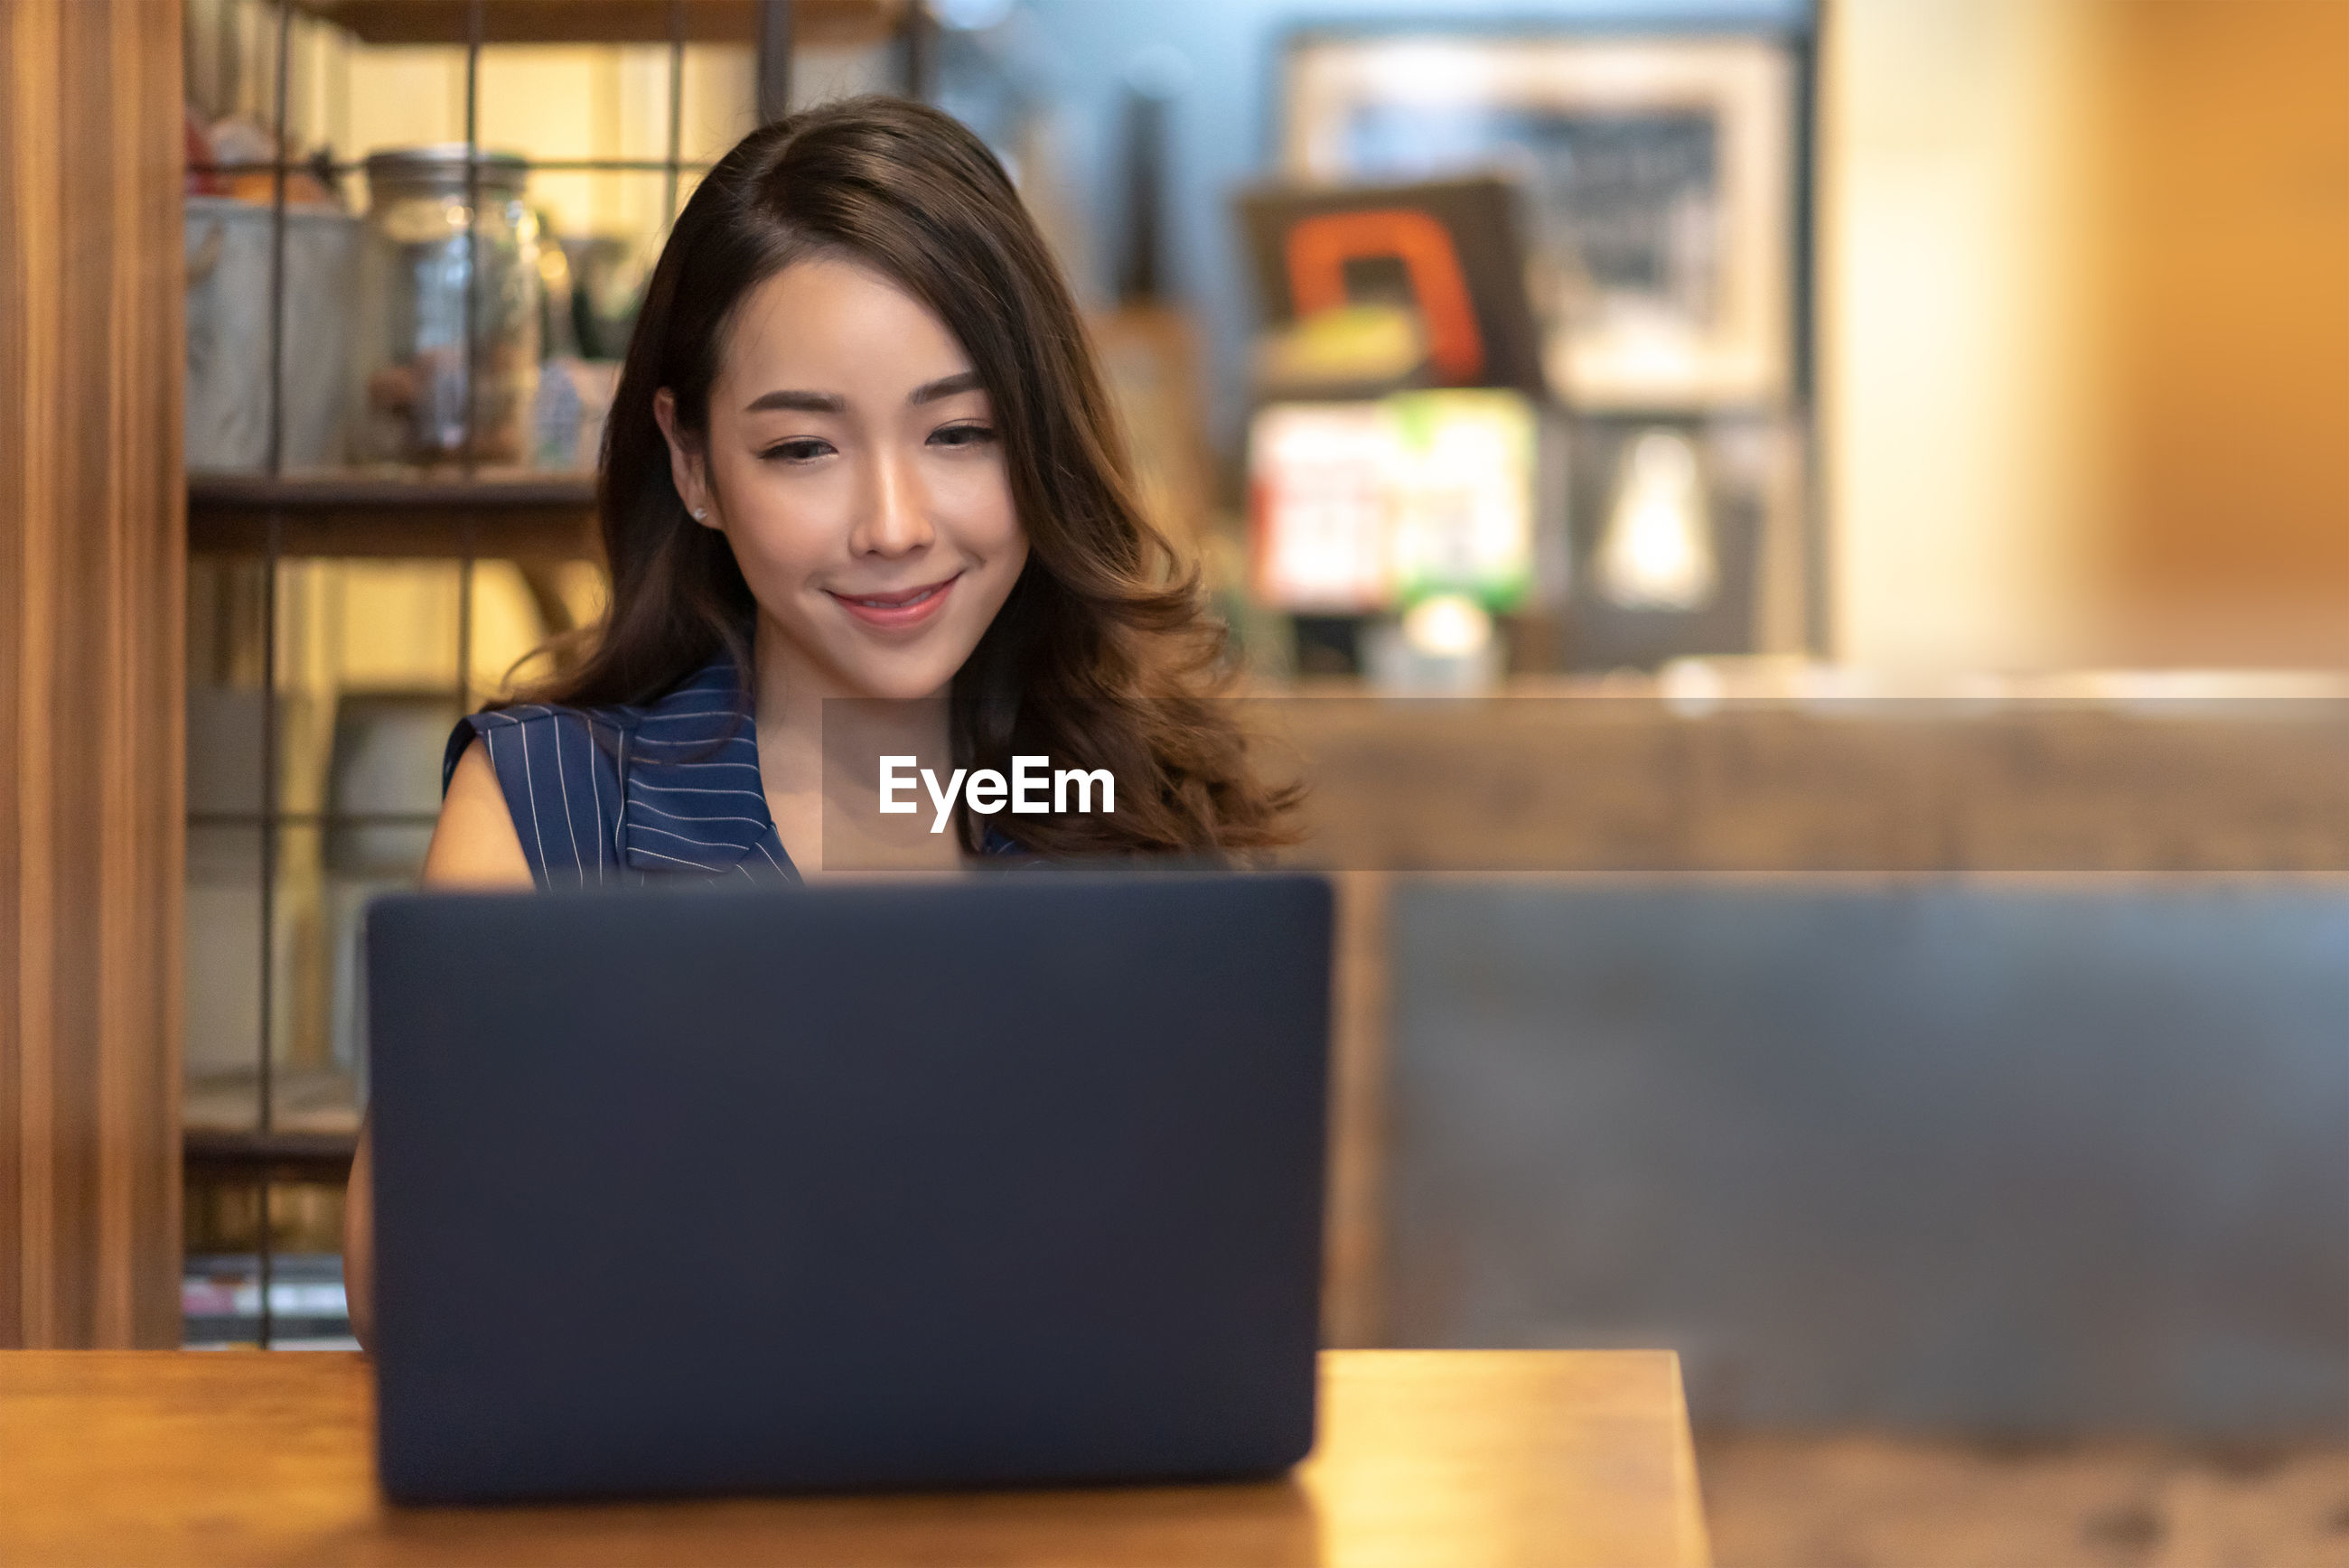 Businesswoman using laptop on table in cafe